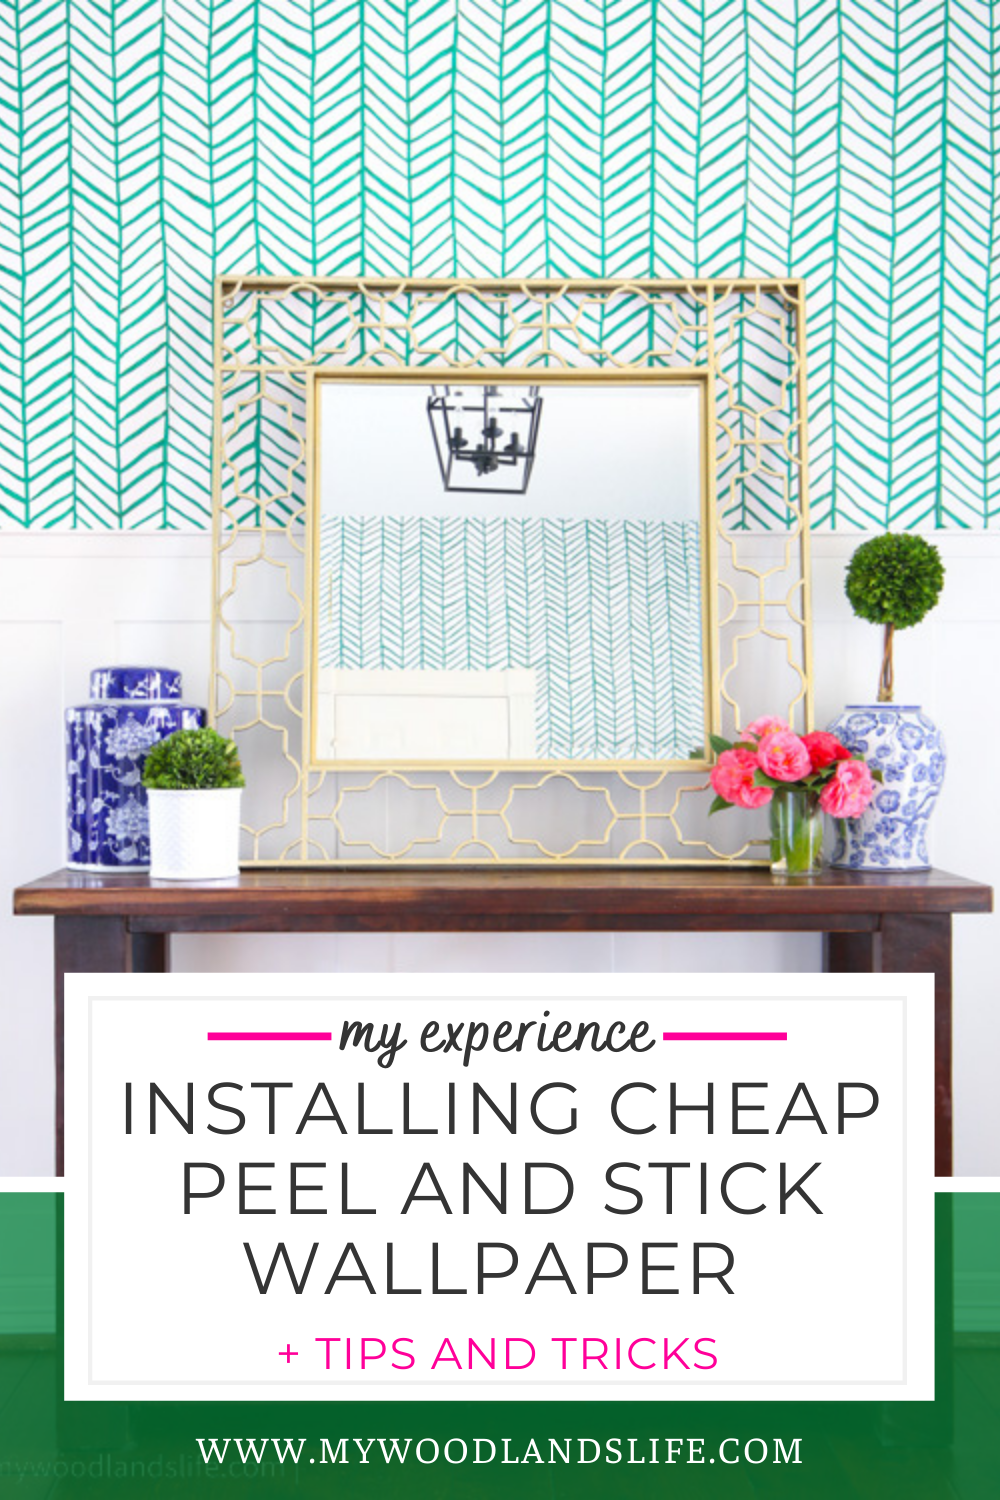 My Experience With Peel And Stick Wallpaper Tips And Tricks My Woodlands Life In 2021 Peel And Stick Wallpaper Wallpaper Life Blogs